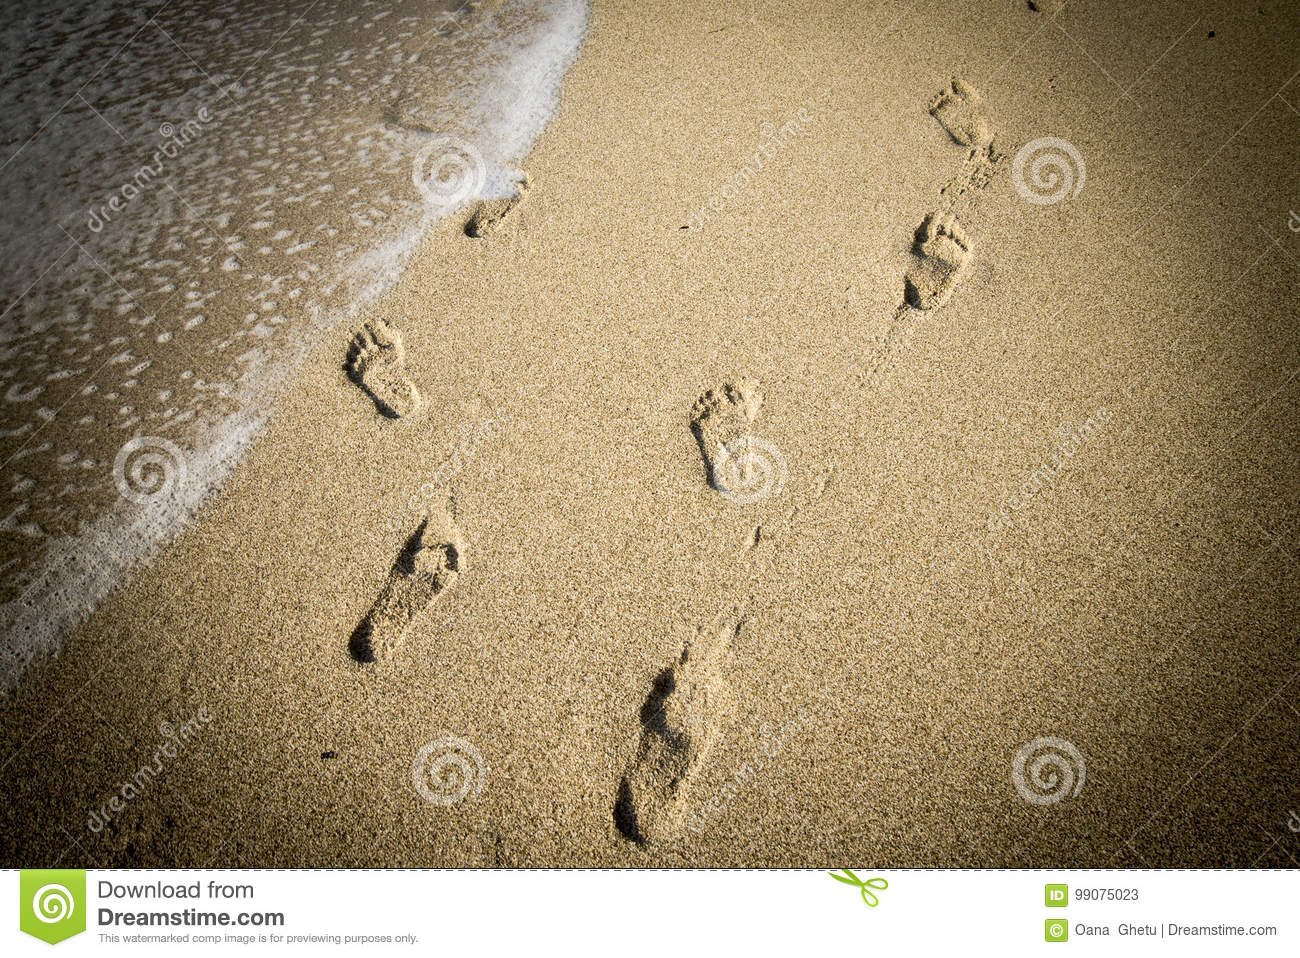 Footprints deep in the sand, optical Illusion